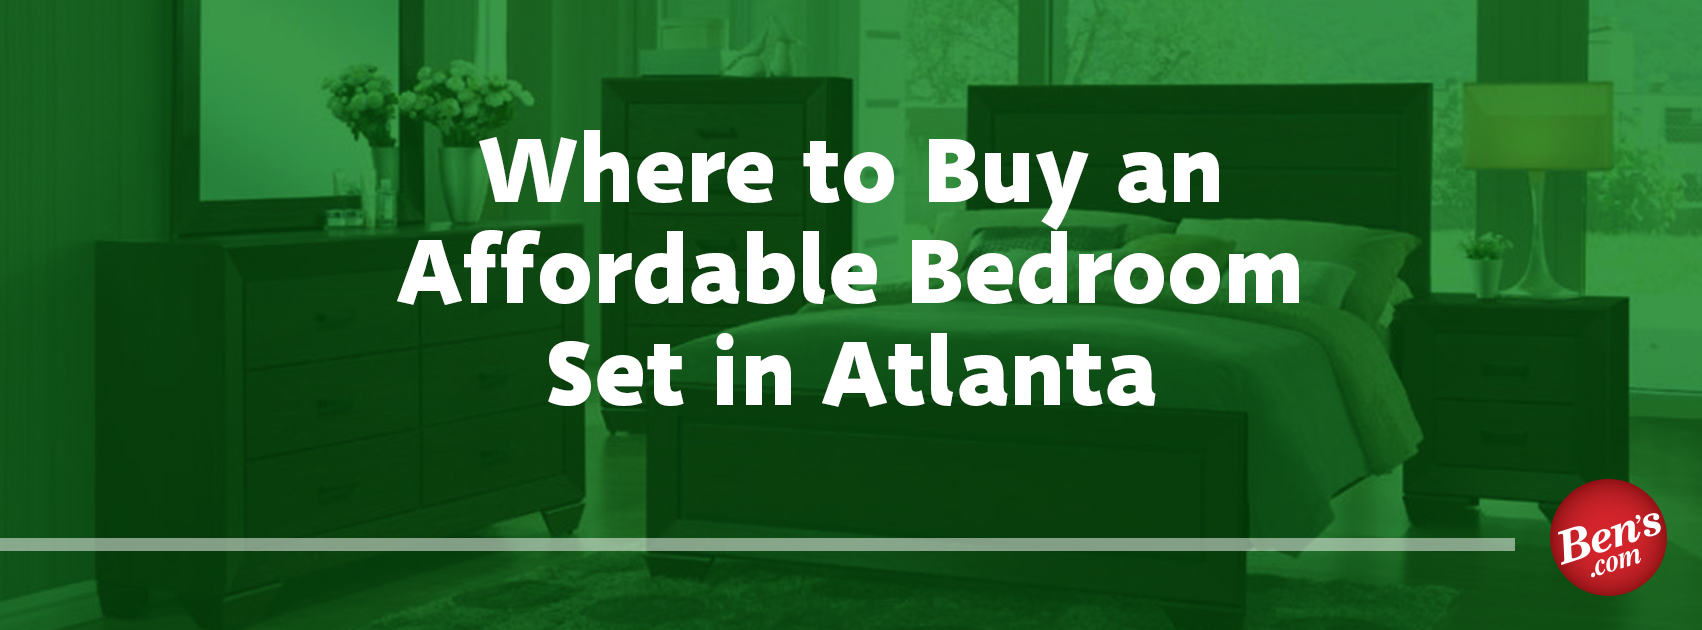 December (3) _ Where to Buy an Affordable Bedroom Set in Atlanta